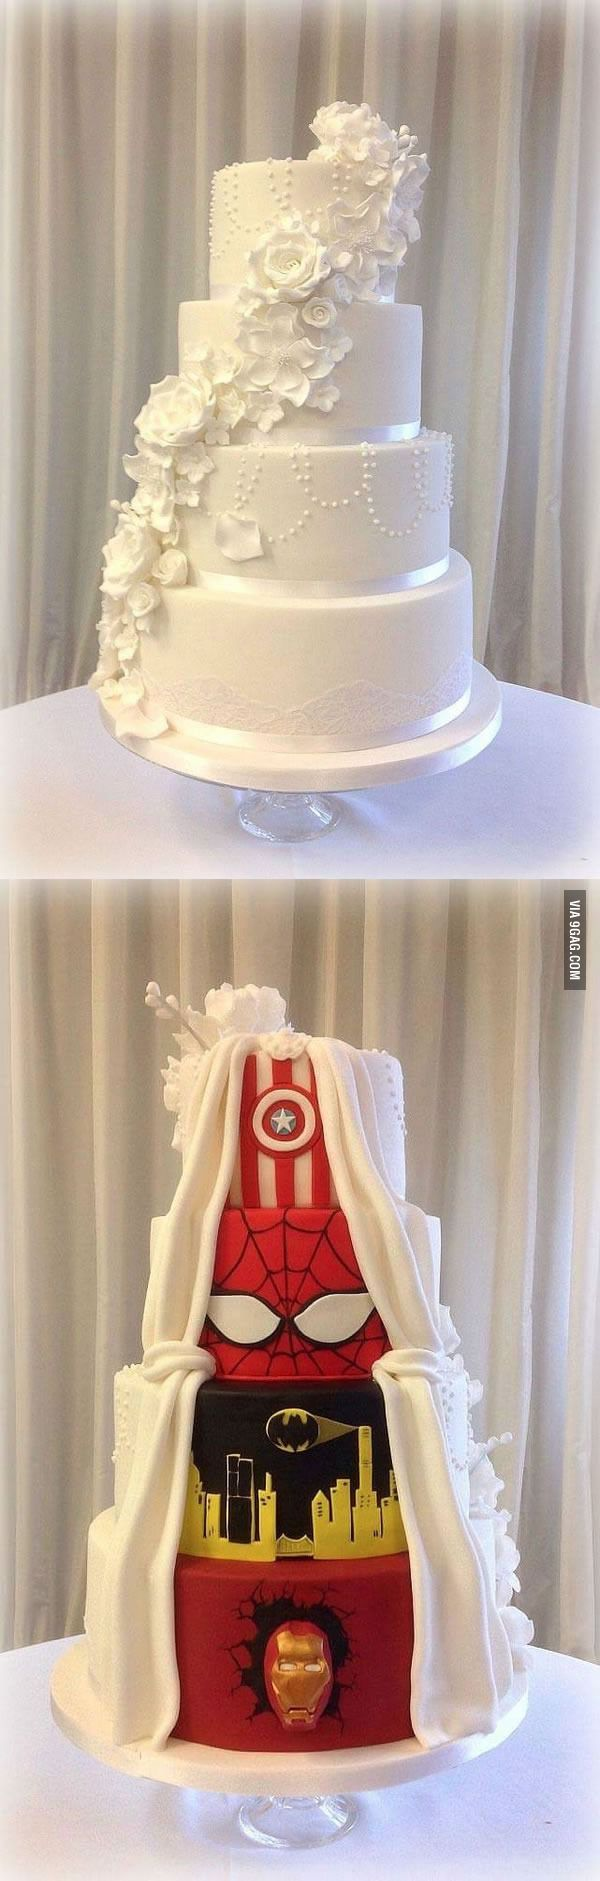 funny wedding cakes pictures best 25 wedding cakes ideas on amazing 14582